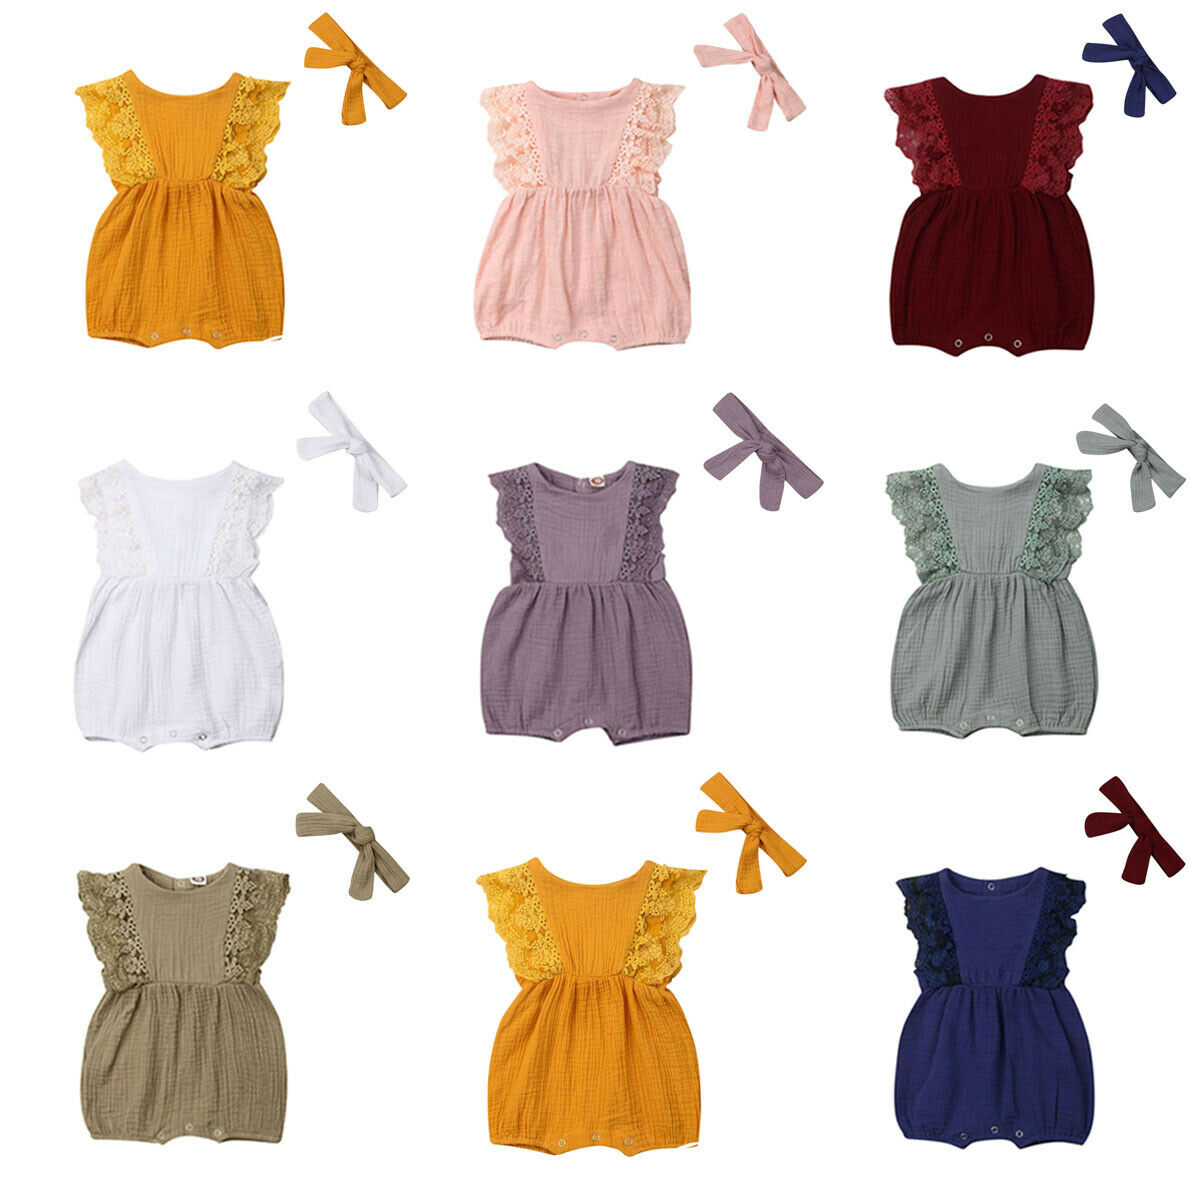 Baby Clothing 2019 Newborn Girls Lace Sleeveless Solid Color Cotton   Romper   Jumpsuit Headband 2PCS Outfits Summer Clothes